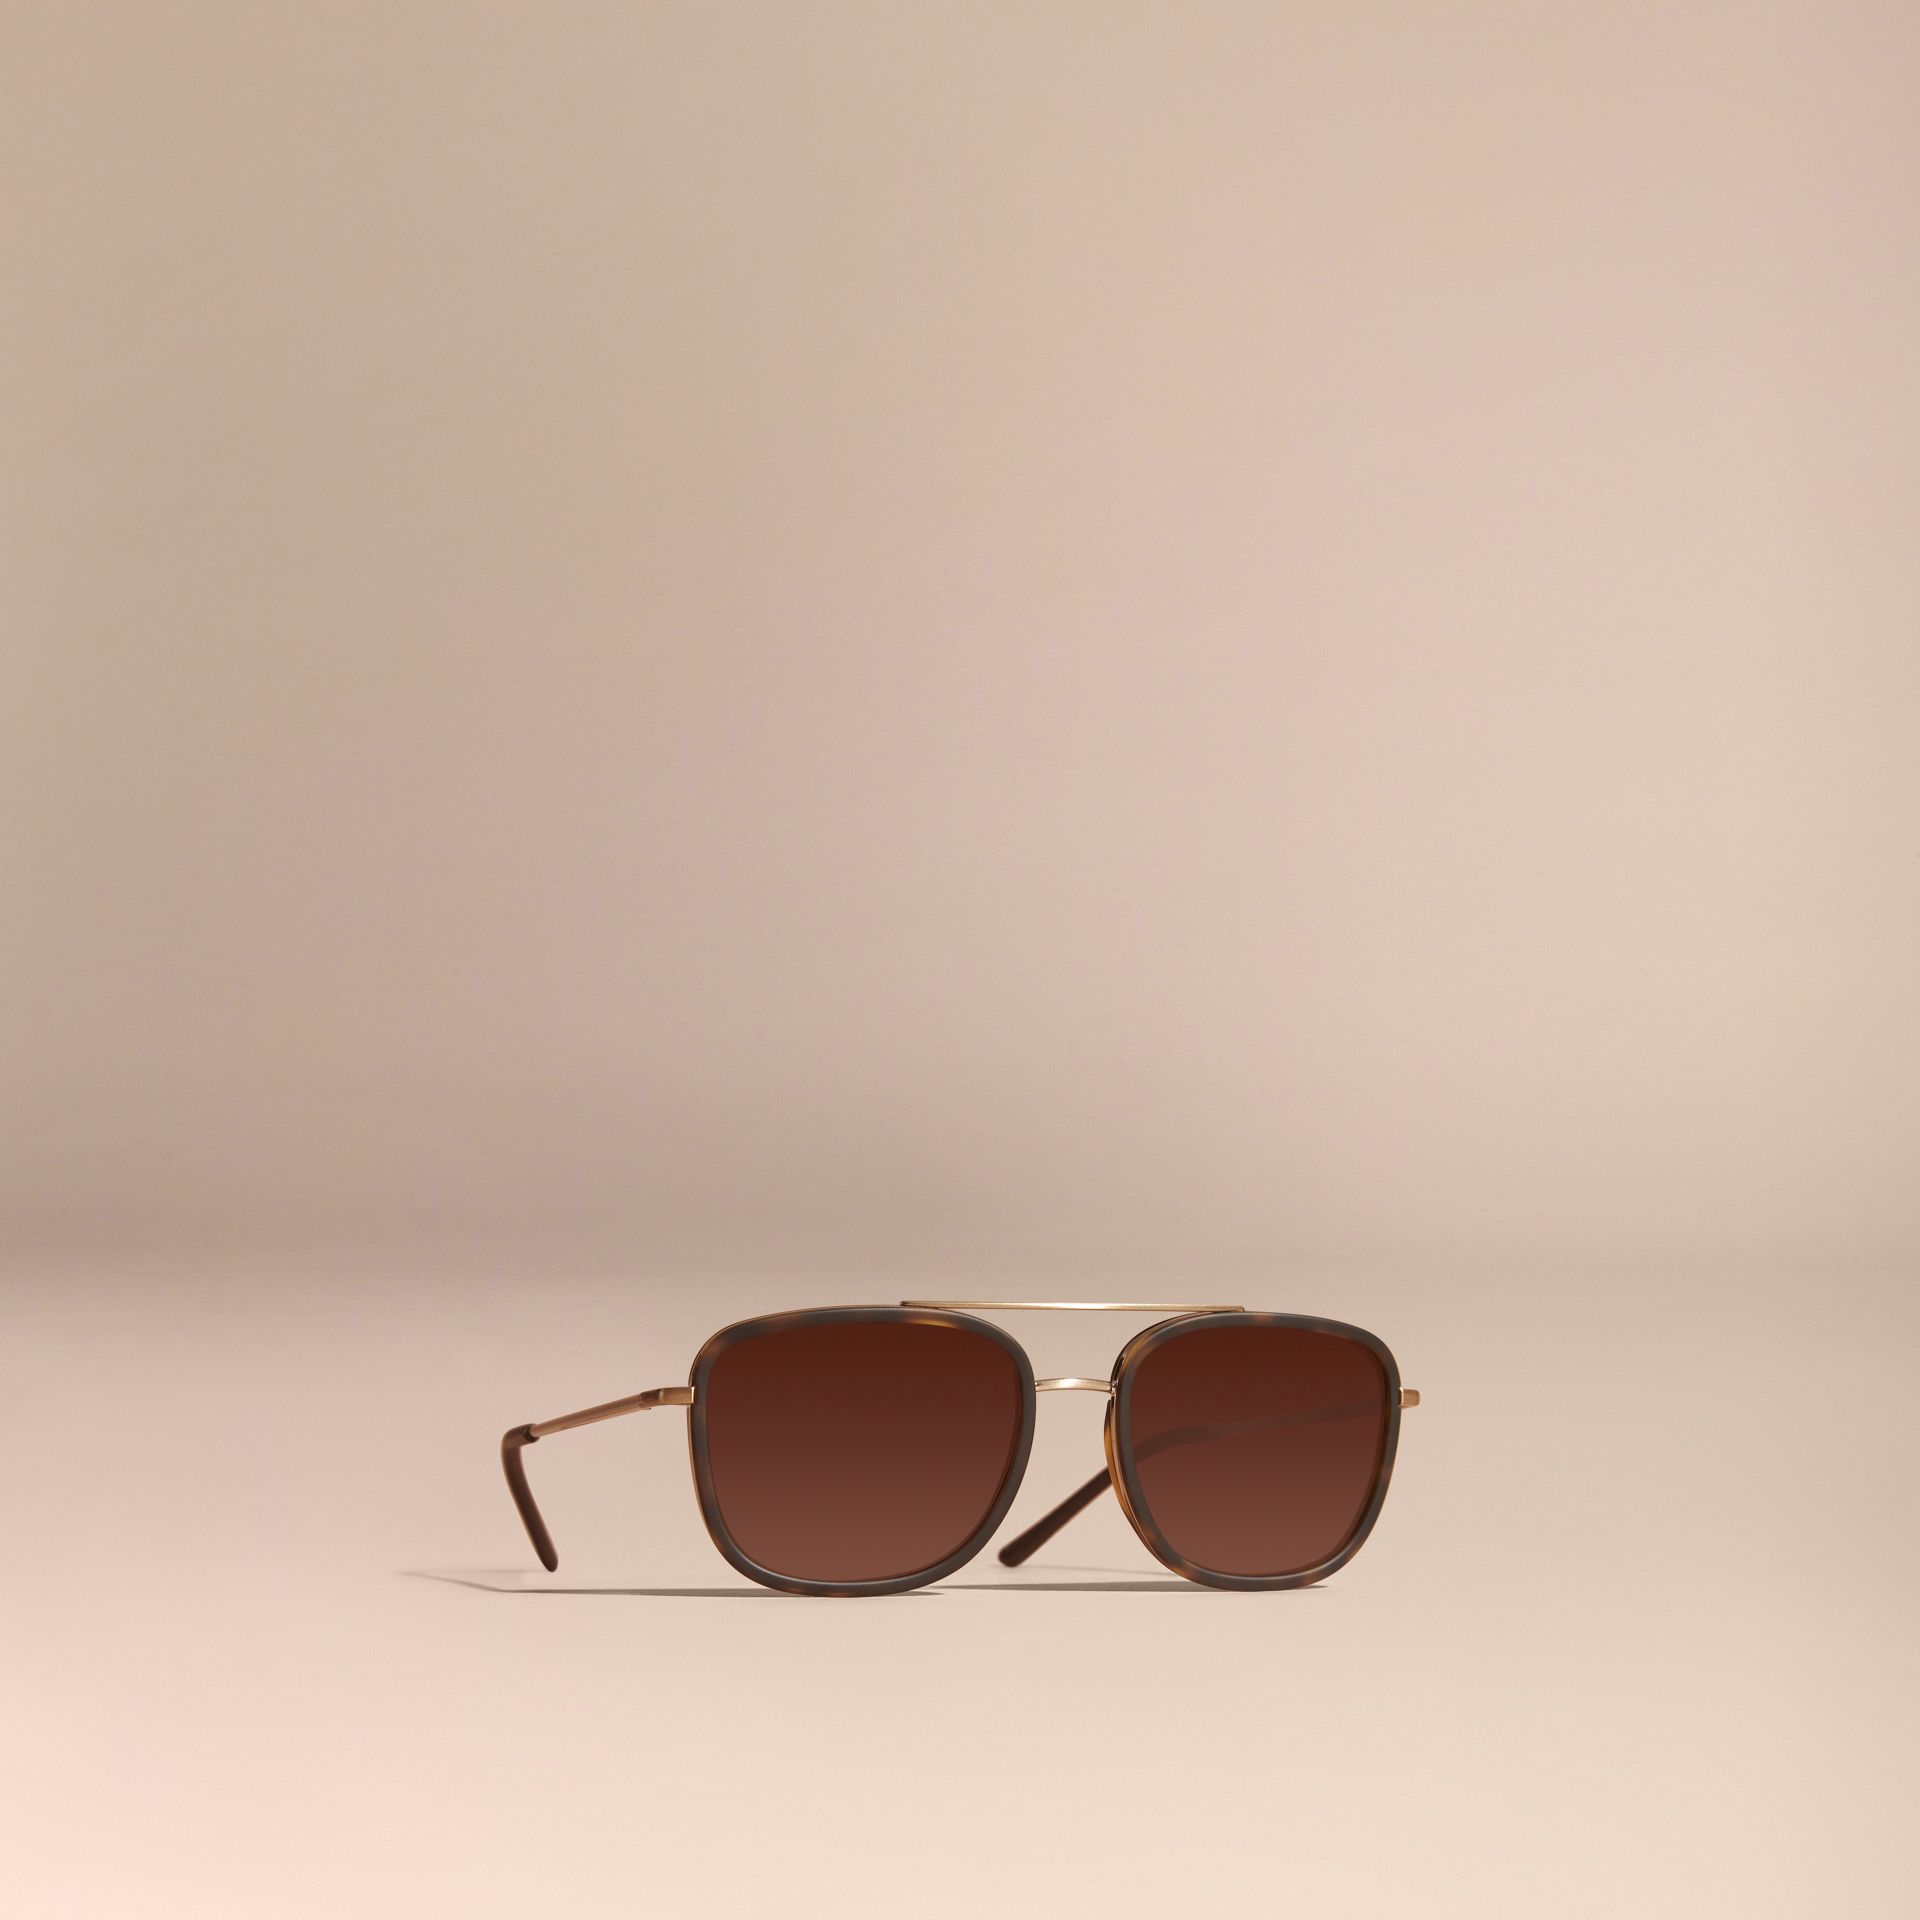 Tortoise shell Square Frame Acetate and Leather Sunglasses Tortoise Shell - gallery image 1